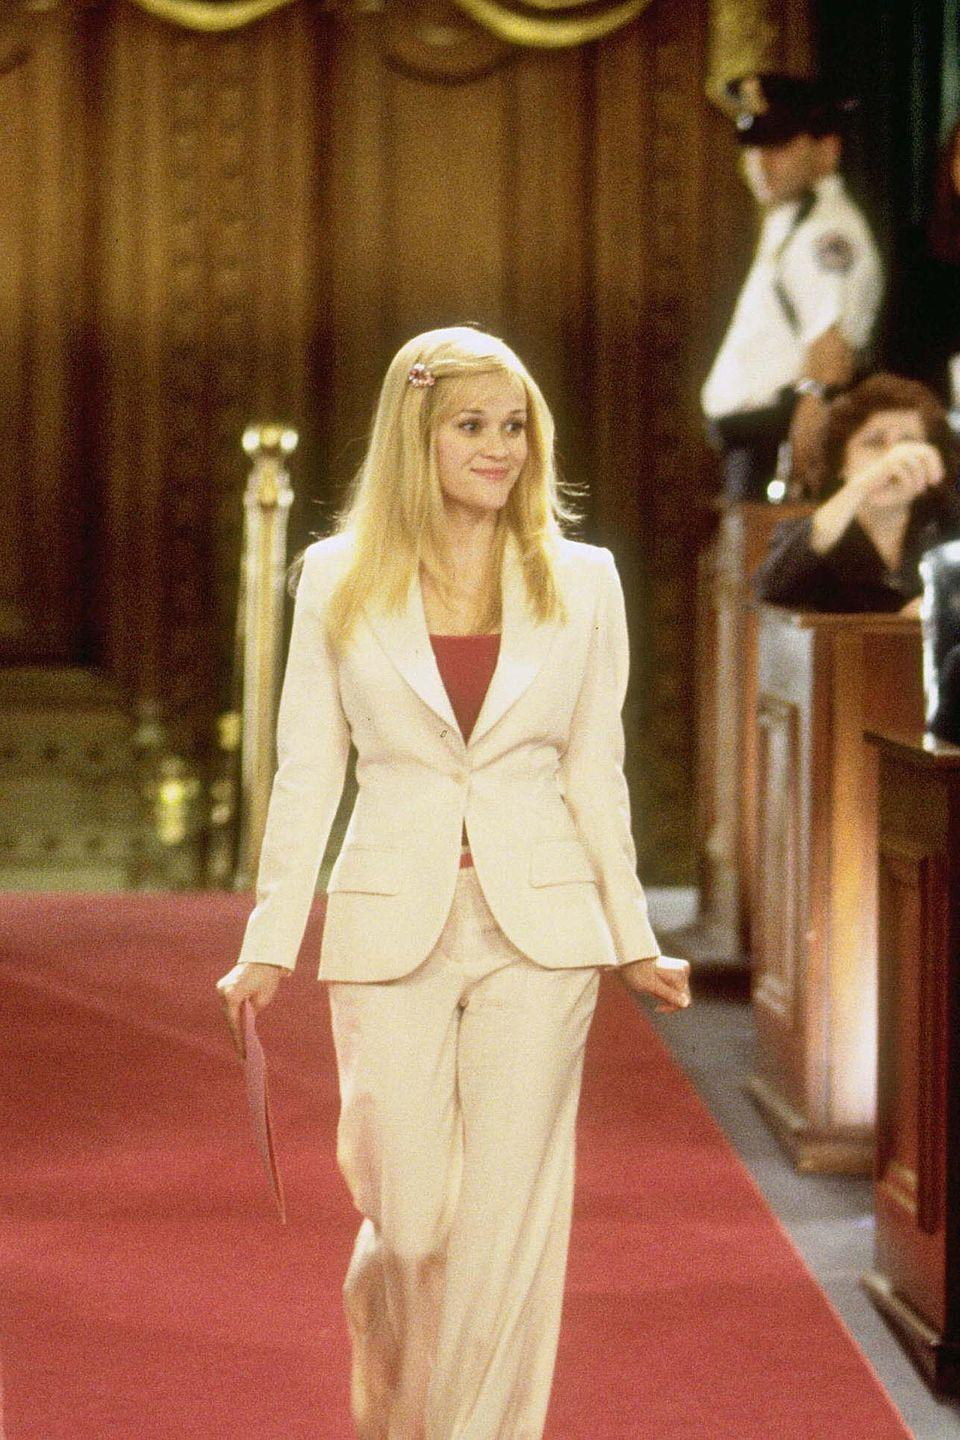 <p>Reese Witherspoon's portrayal of Elle Woods in both Legally Blonde movies is filled memorable fashion moments, many of which should inspire your back-to-work wardrobe, particularly if you're partial to a bit of pink.</p>